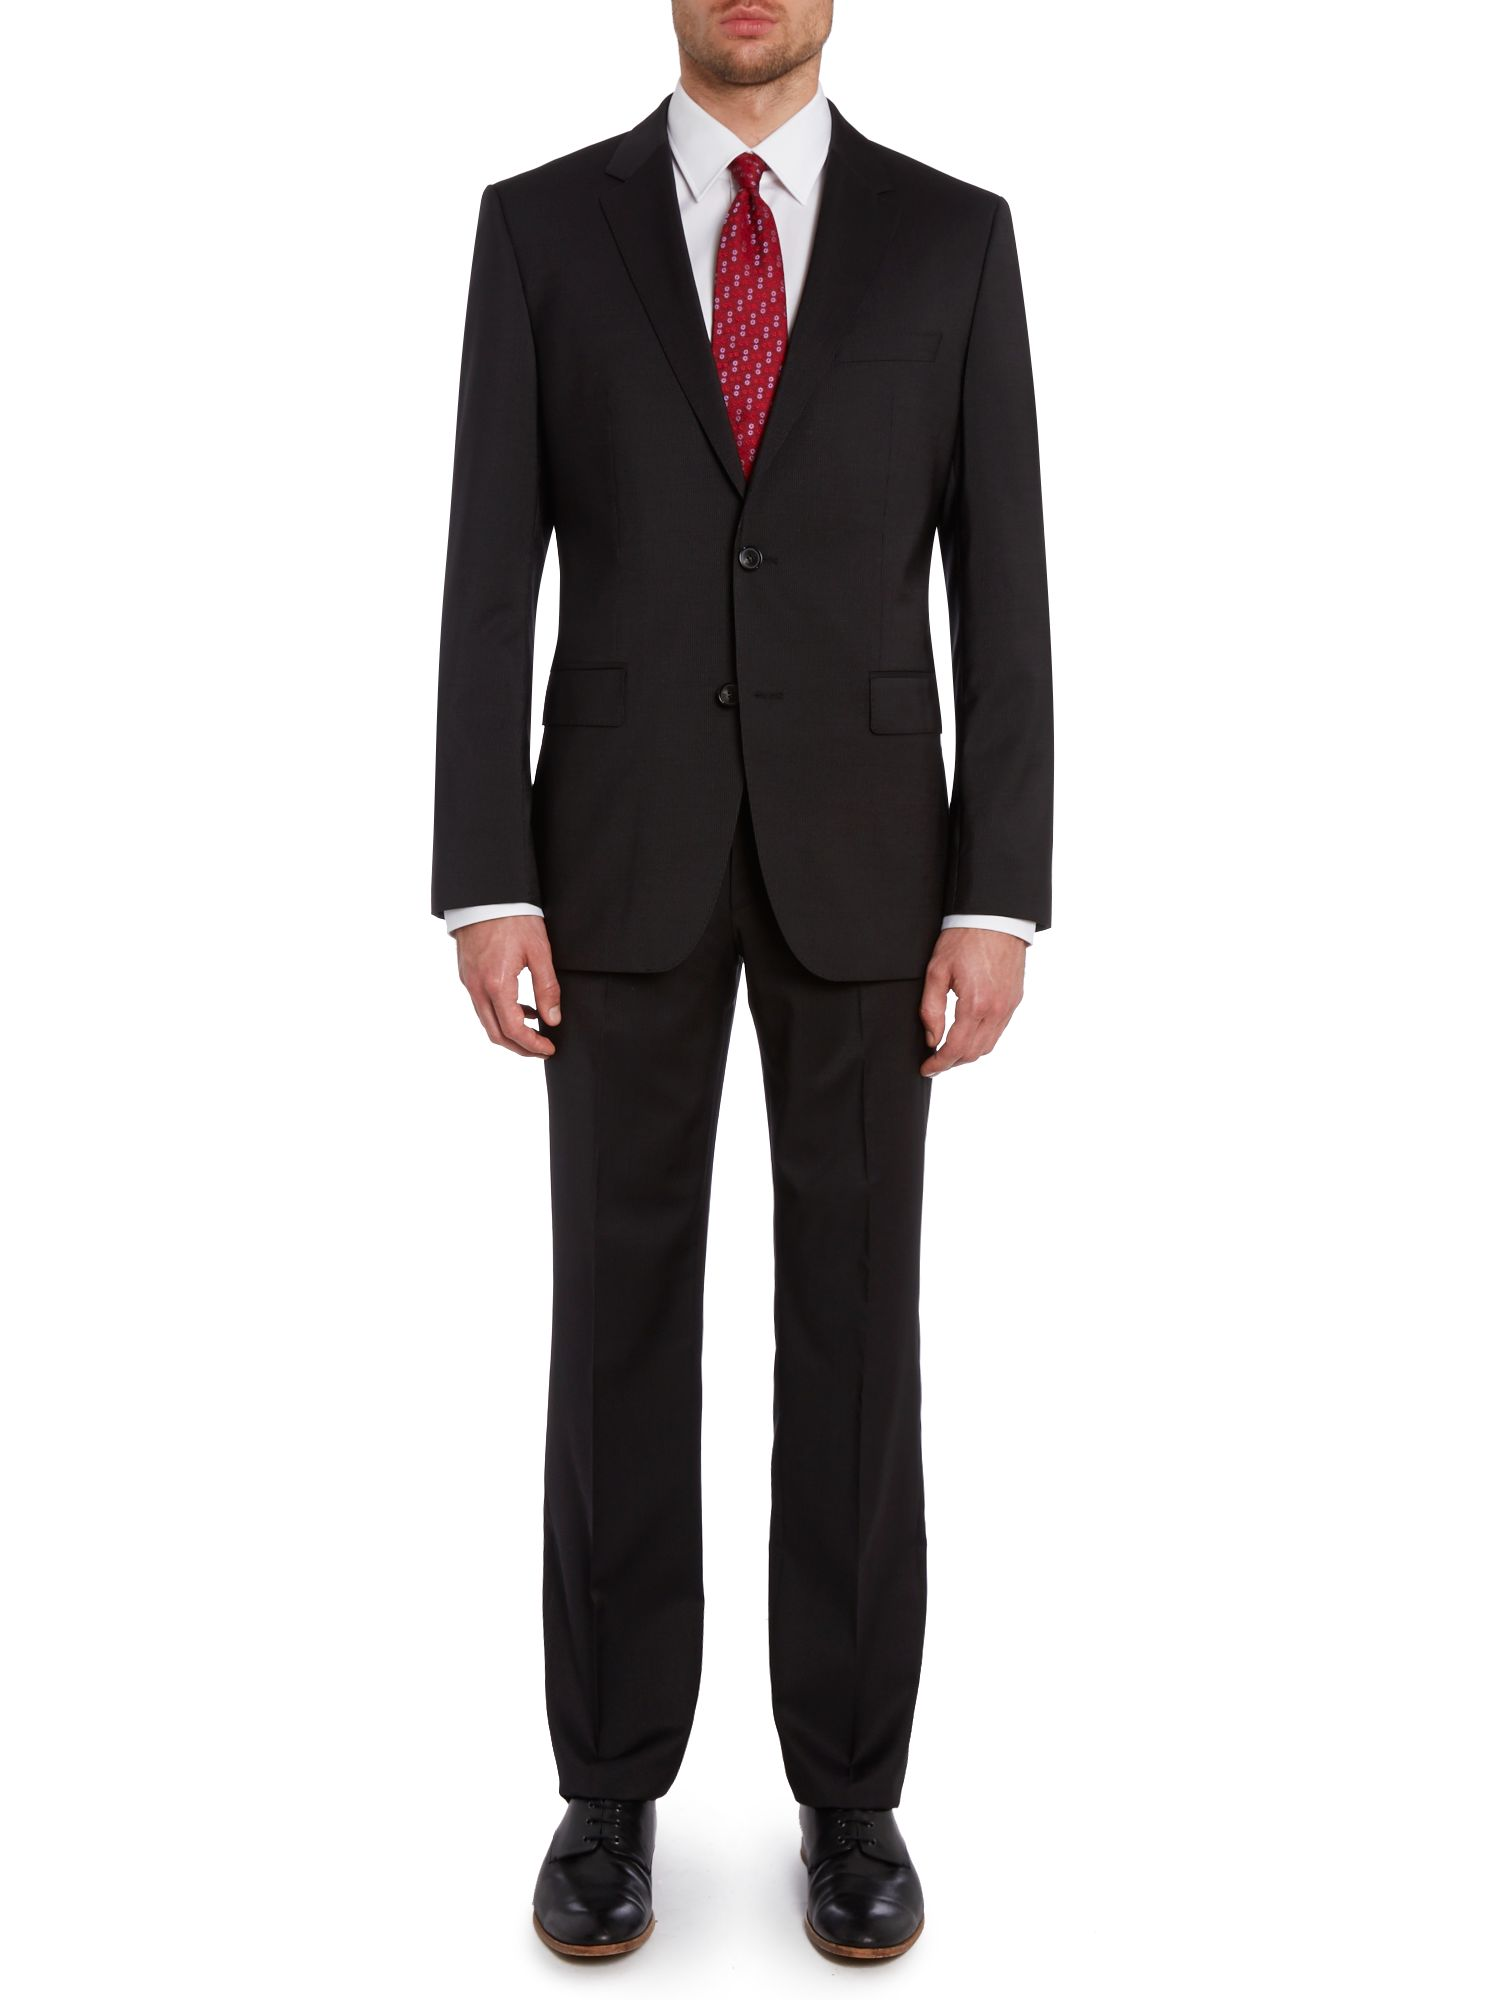 James Sharp regular fit pinstripe suit